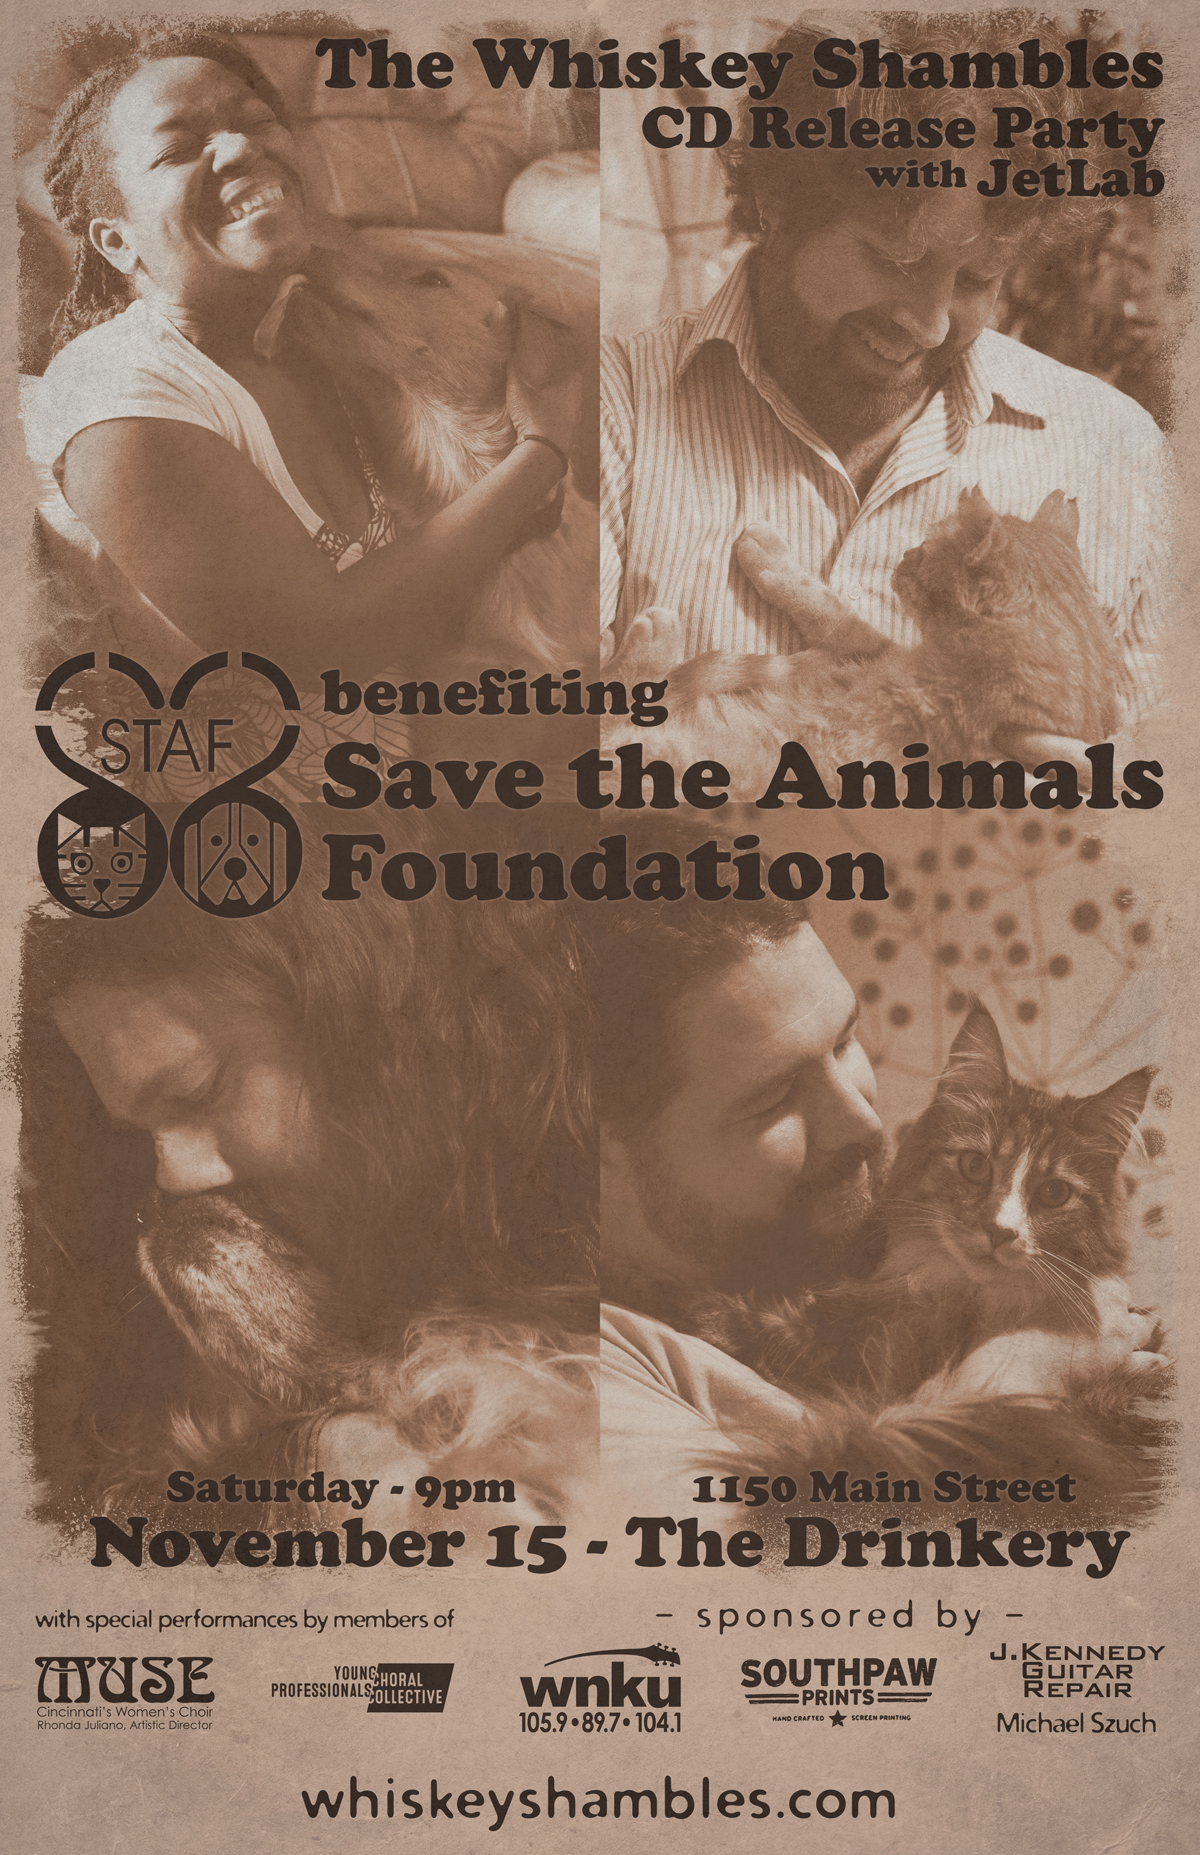 The Whiskey Shambles – 2014-11-15 CD Release / STAF Benefit (poster 2)